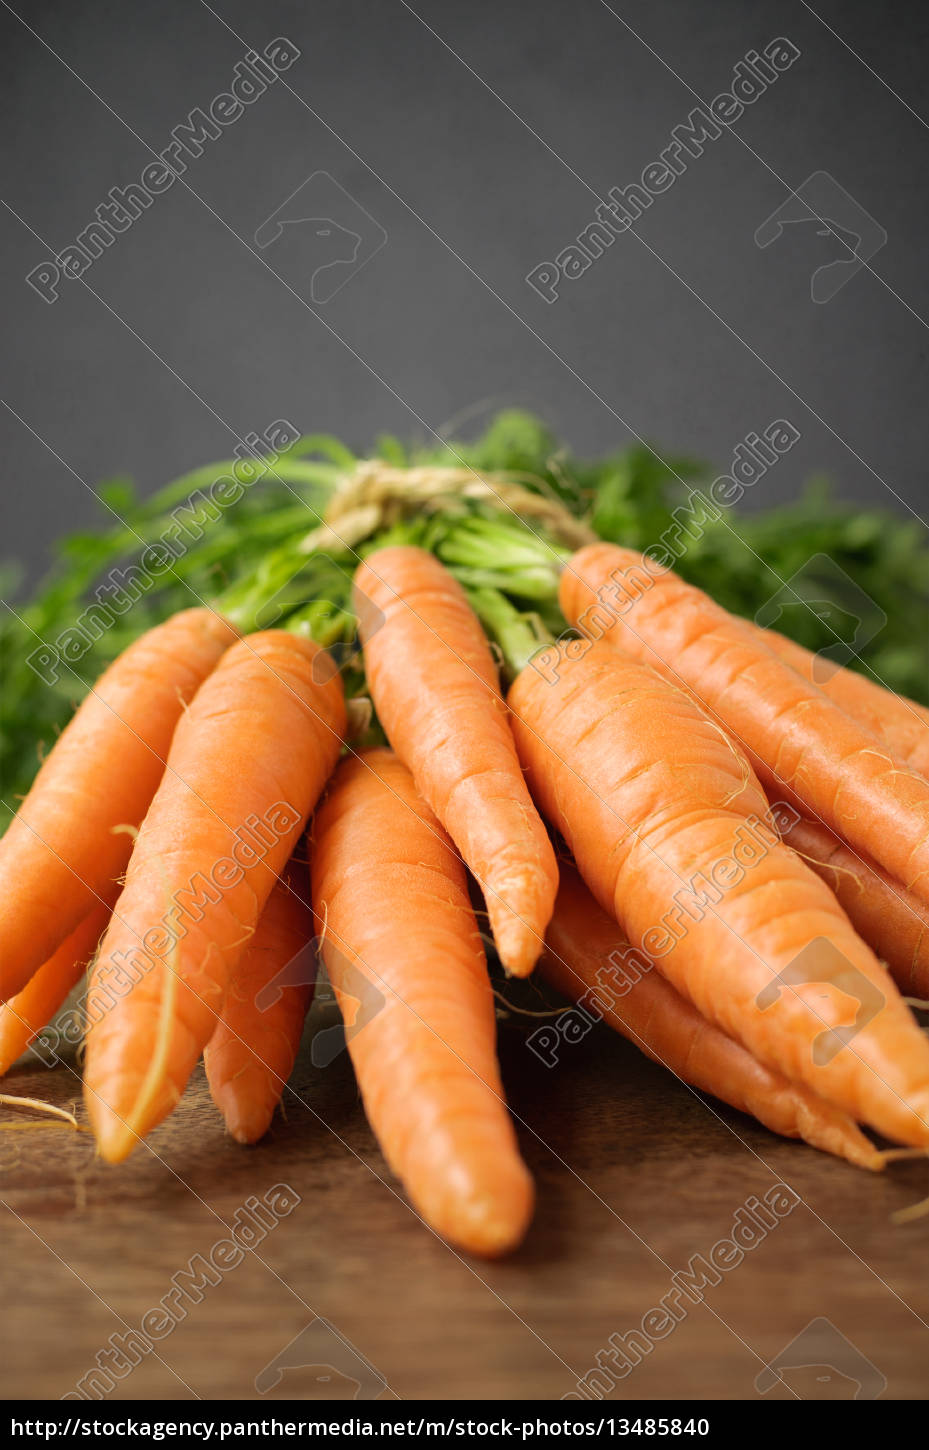 fresh, carrots, on, wooden, table - 13485840